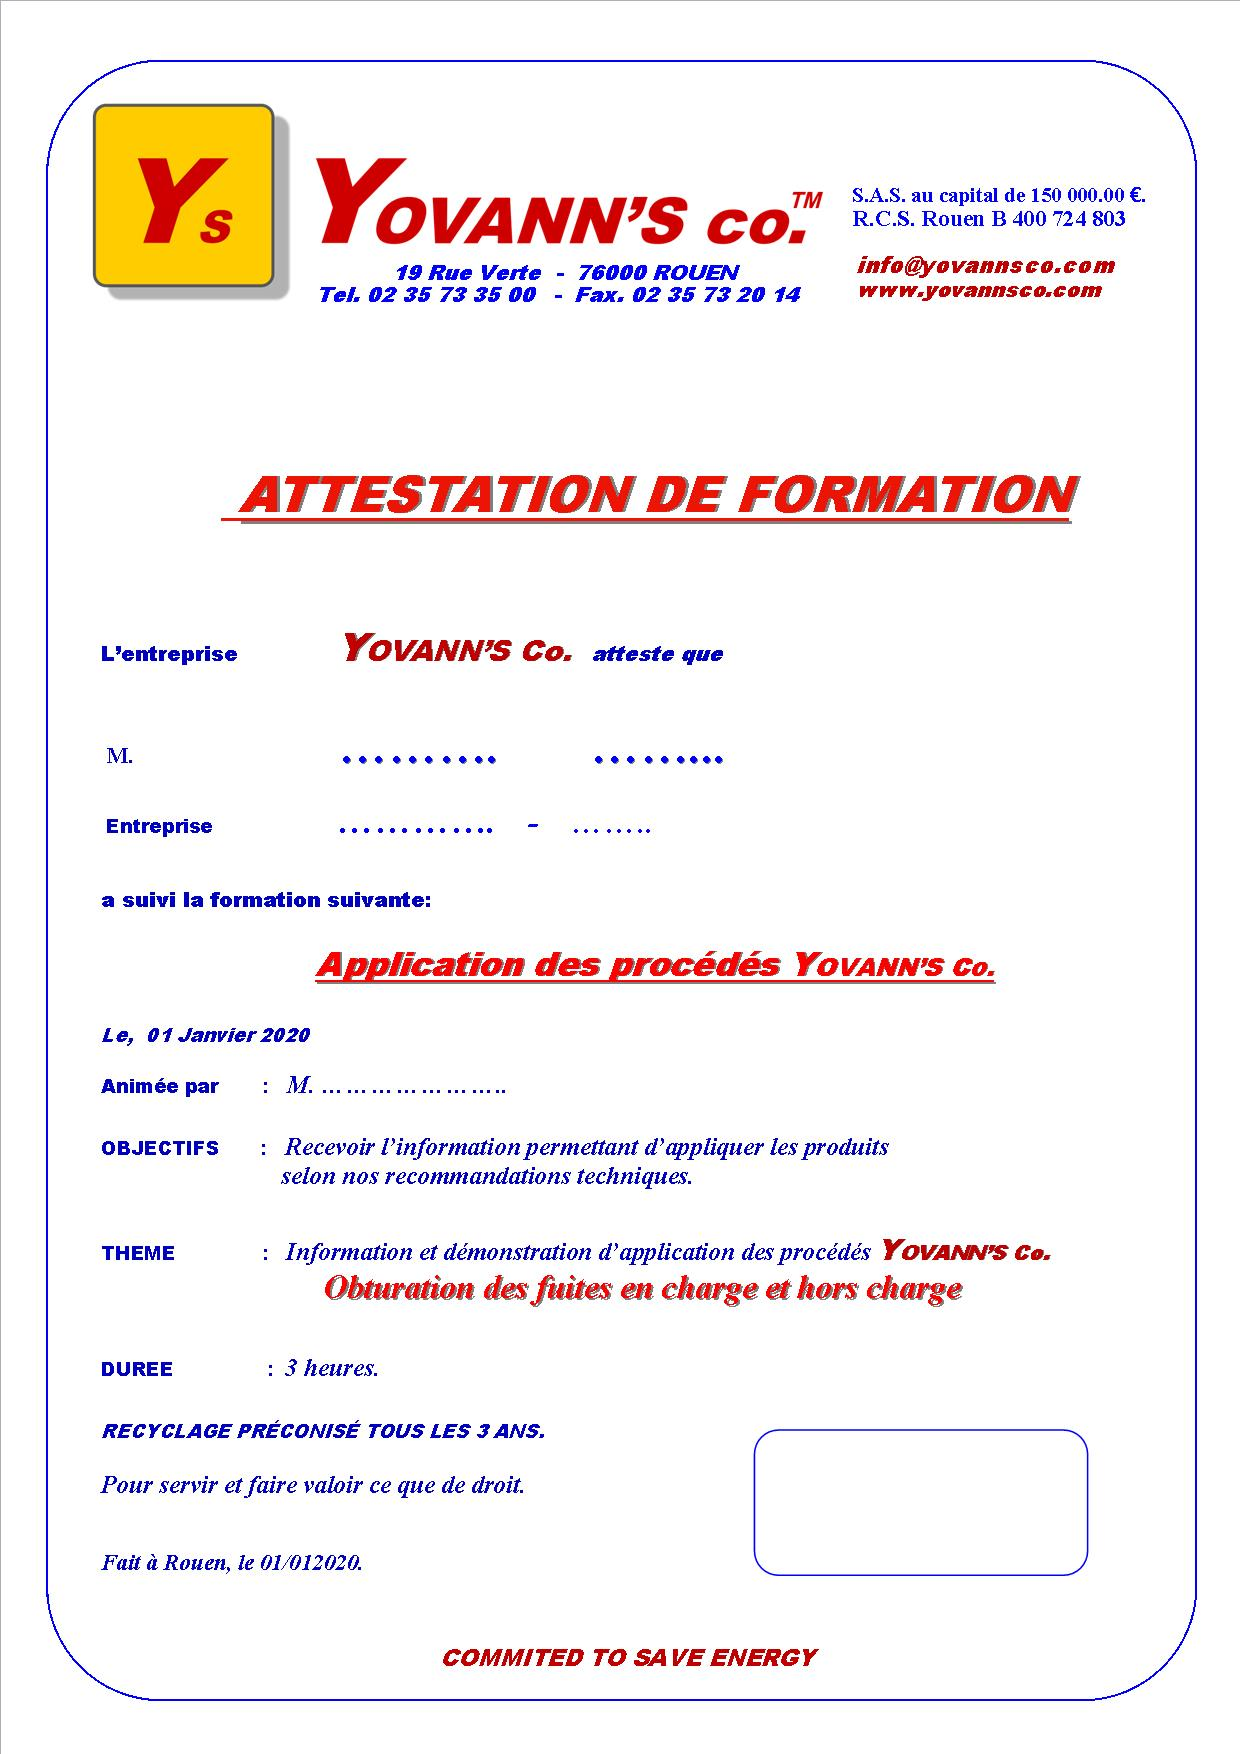 Attestation de formation Yovann's Co